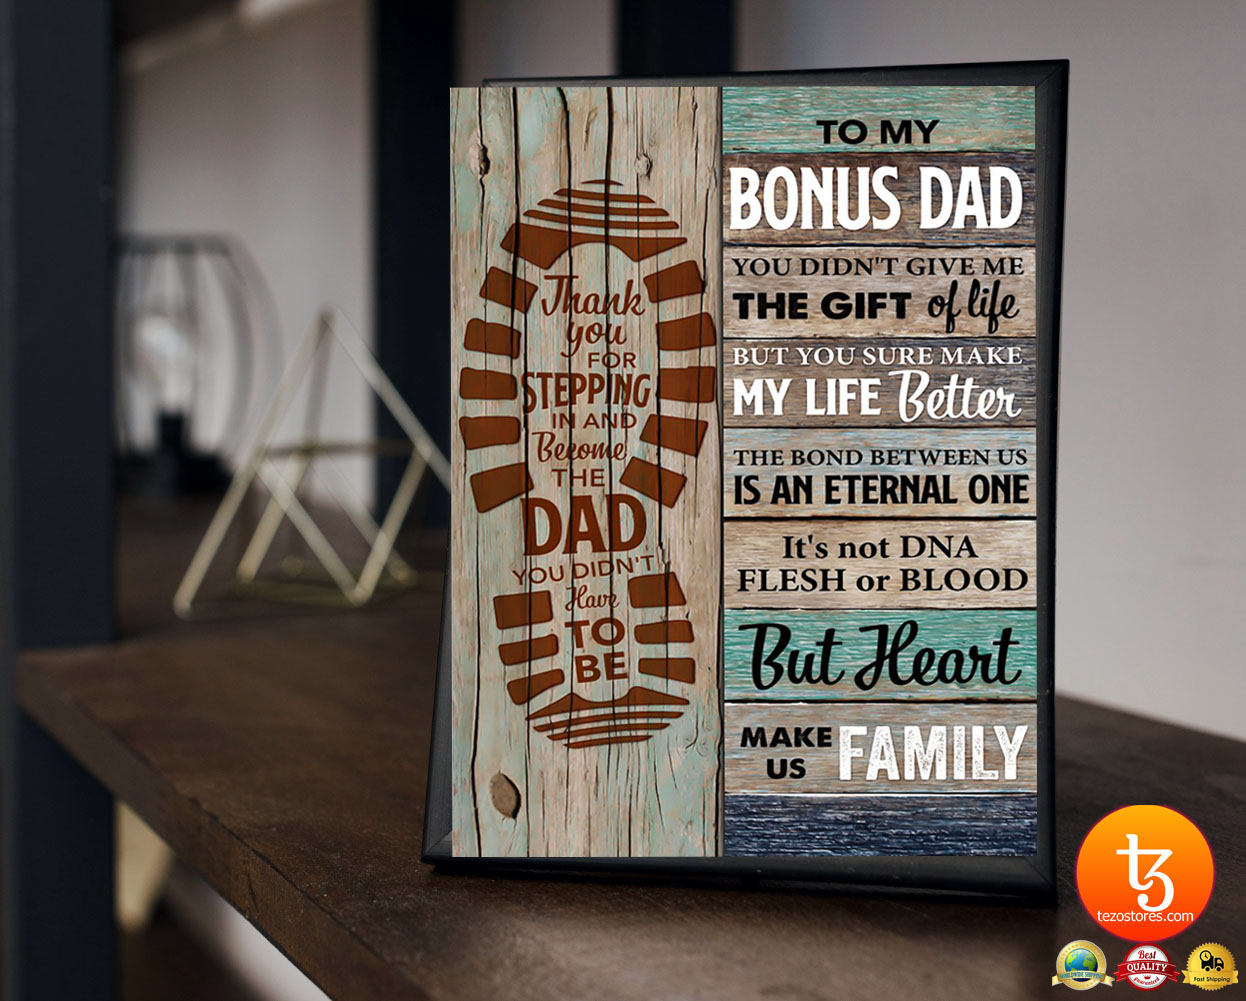 To my bonus dad you didn't give me the gift of life but you sure make my life better poster 23